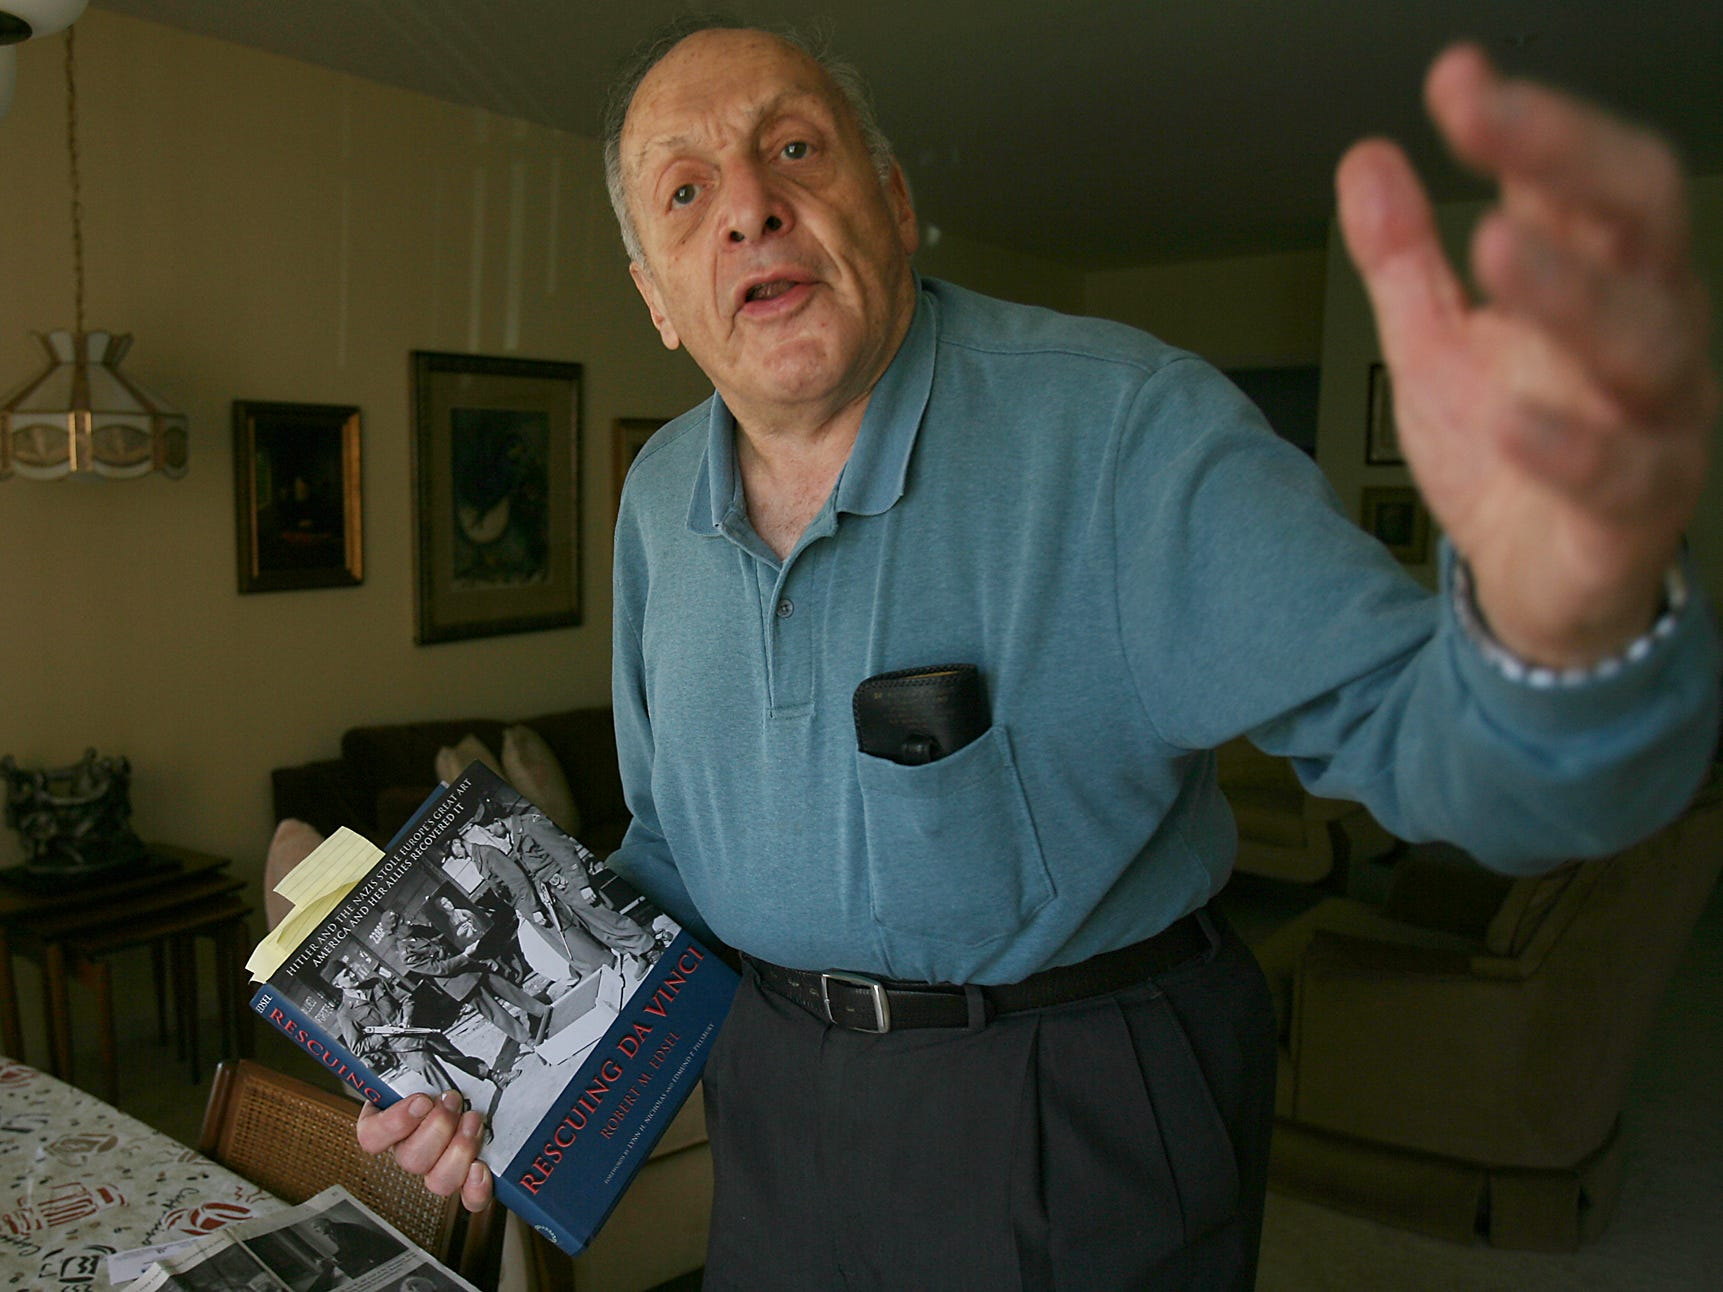 "Rockaway, Sept. 19, 2007 -- Harry L. Ettlinger was one of the ""Monuments Men"" who guarded and repatriated artwork stolen by Nazis during World War II. He holds Robert M. Edsel's book Rescuing Da Vinci.